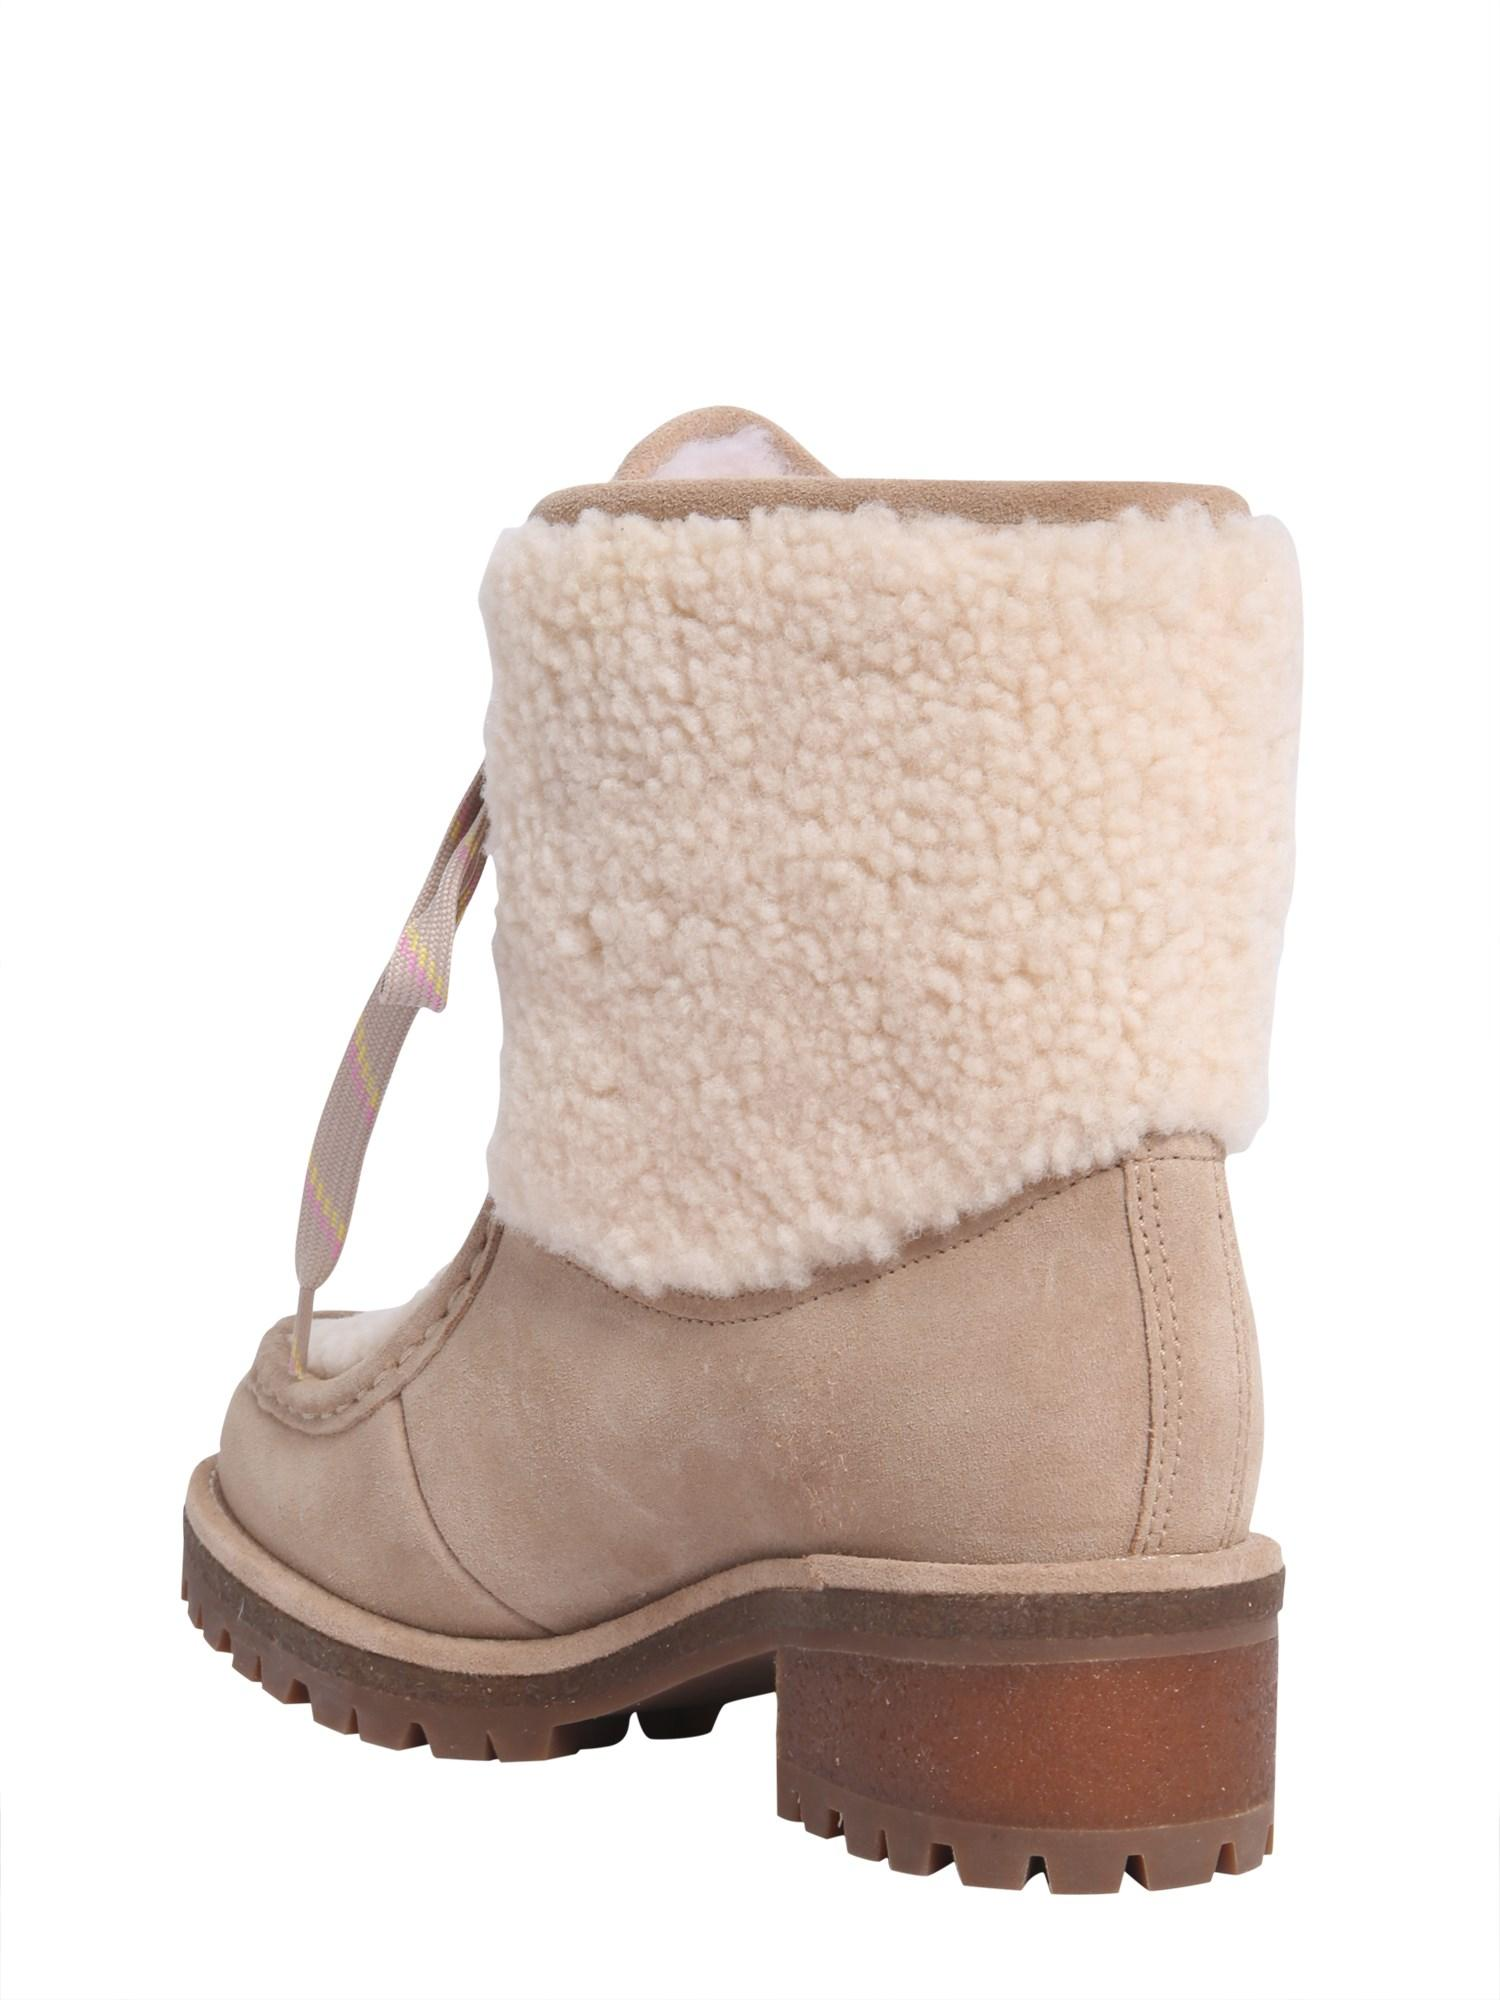 ddcc234ca Lyst - Tory Burch Meadow Shearling And Suede Boots in Natural - Save 24%